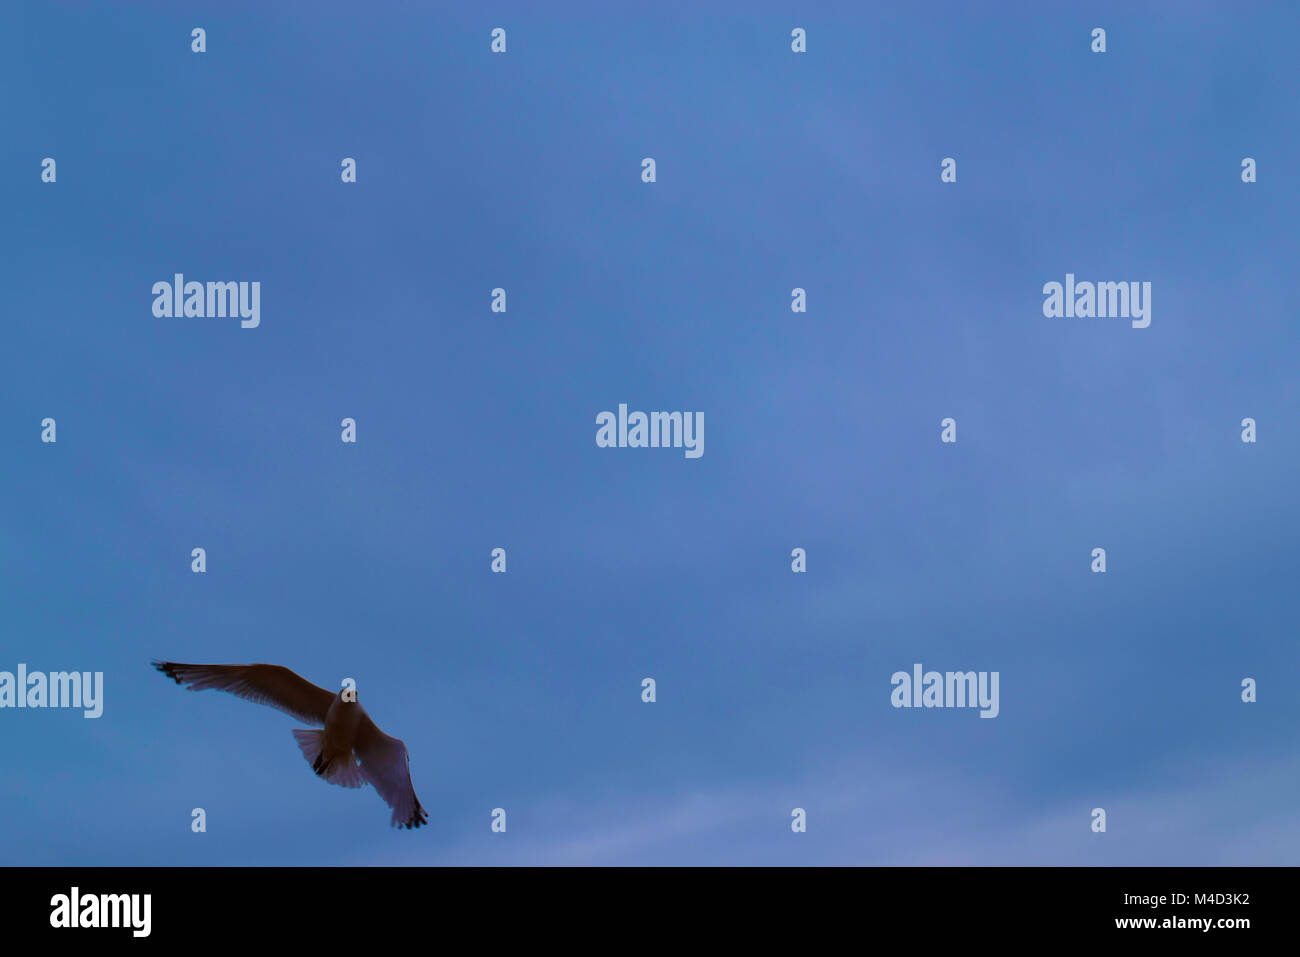 Bird - Stock Image